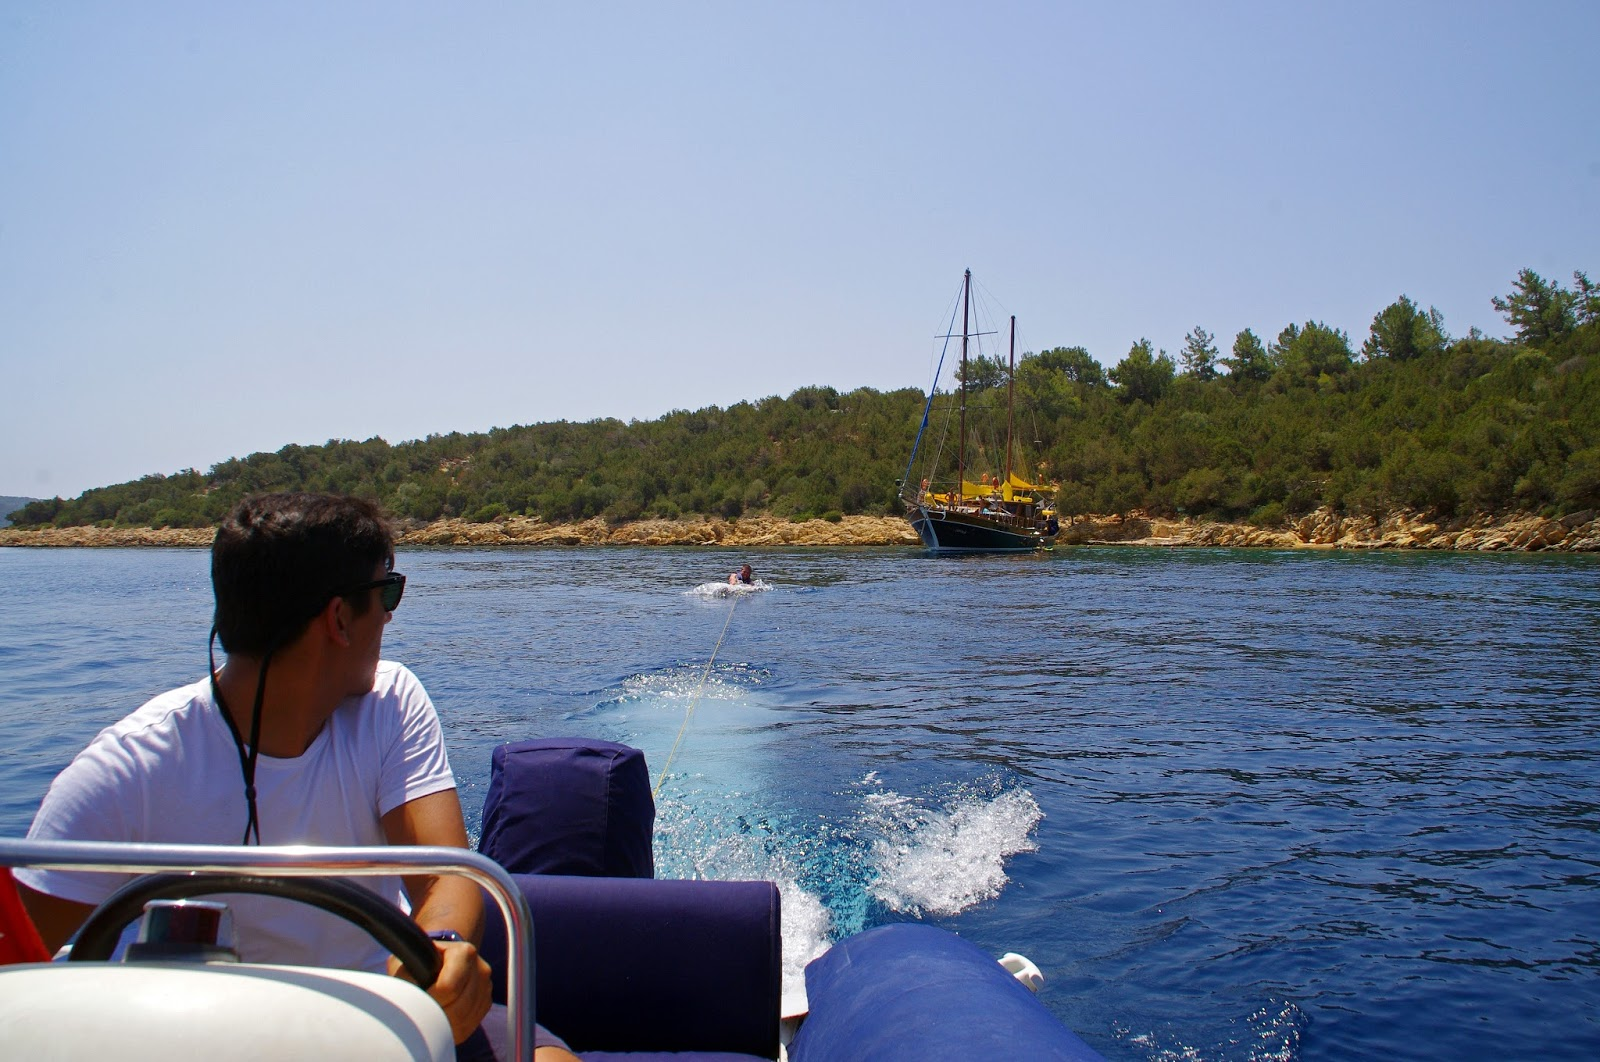 Kneeboarding in Turkey